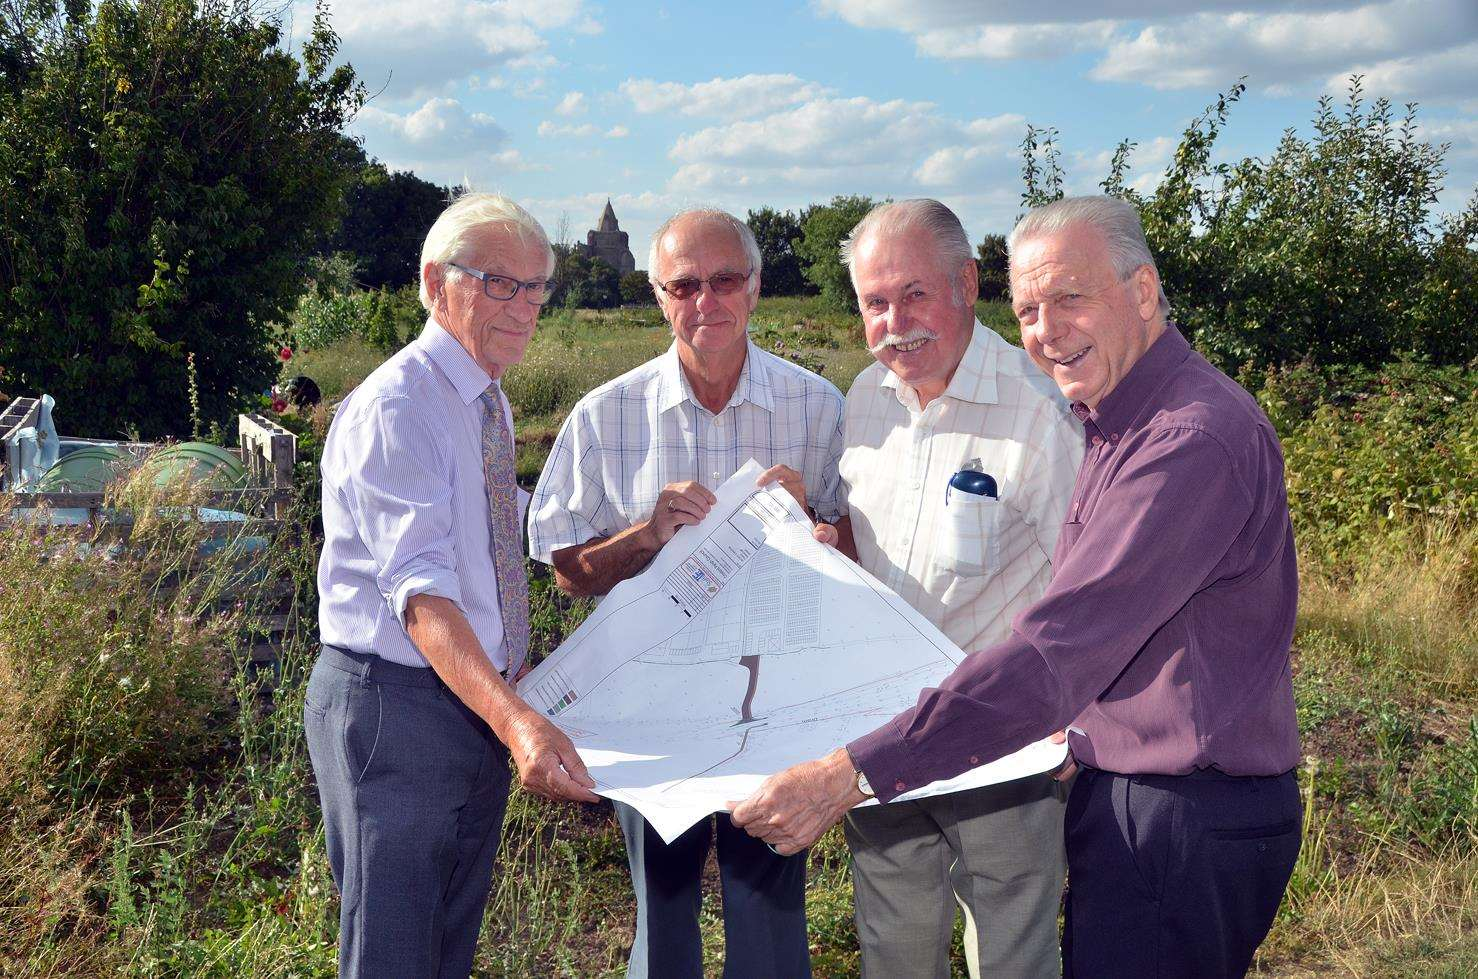 PLAY TOWN: Parish councillors Bryan Alcock, Peter Haselgrove, Reg Boot and David Ringham at the new allotment site in Crowland.Photo by Tim Wilson.020818139SG